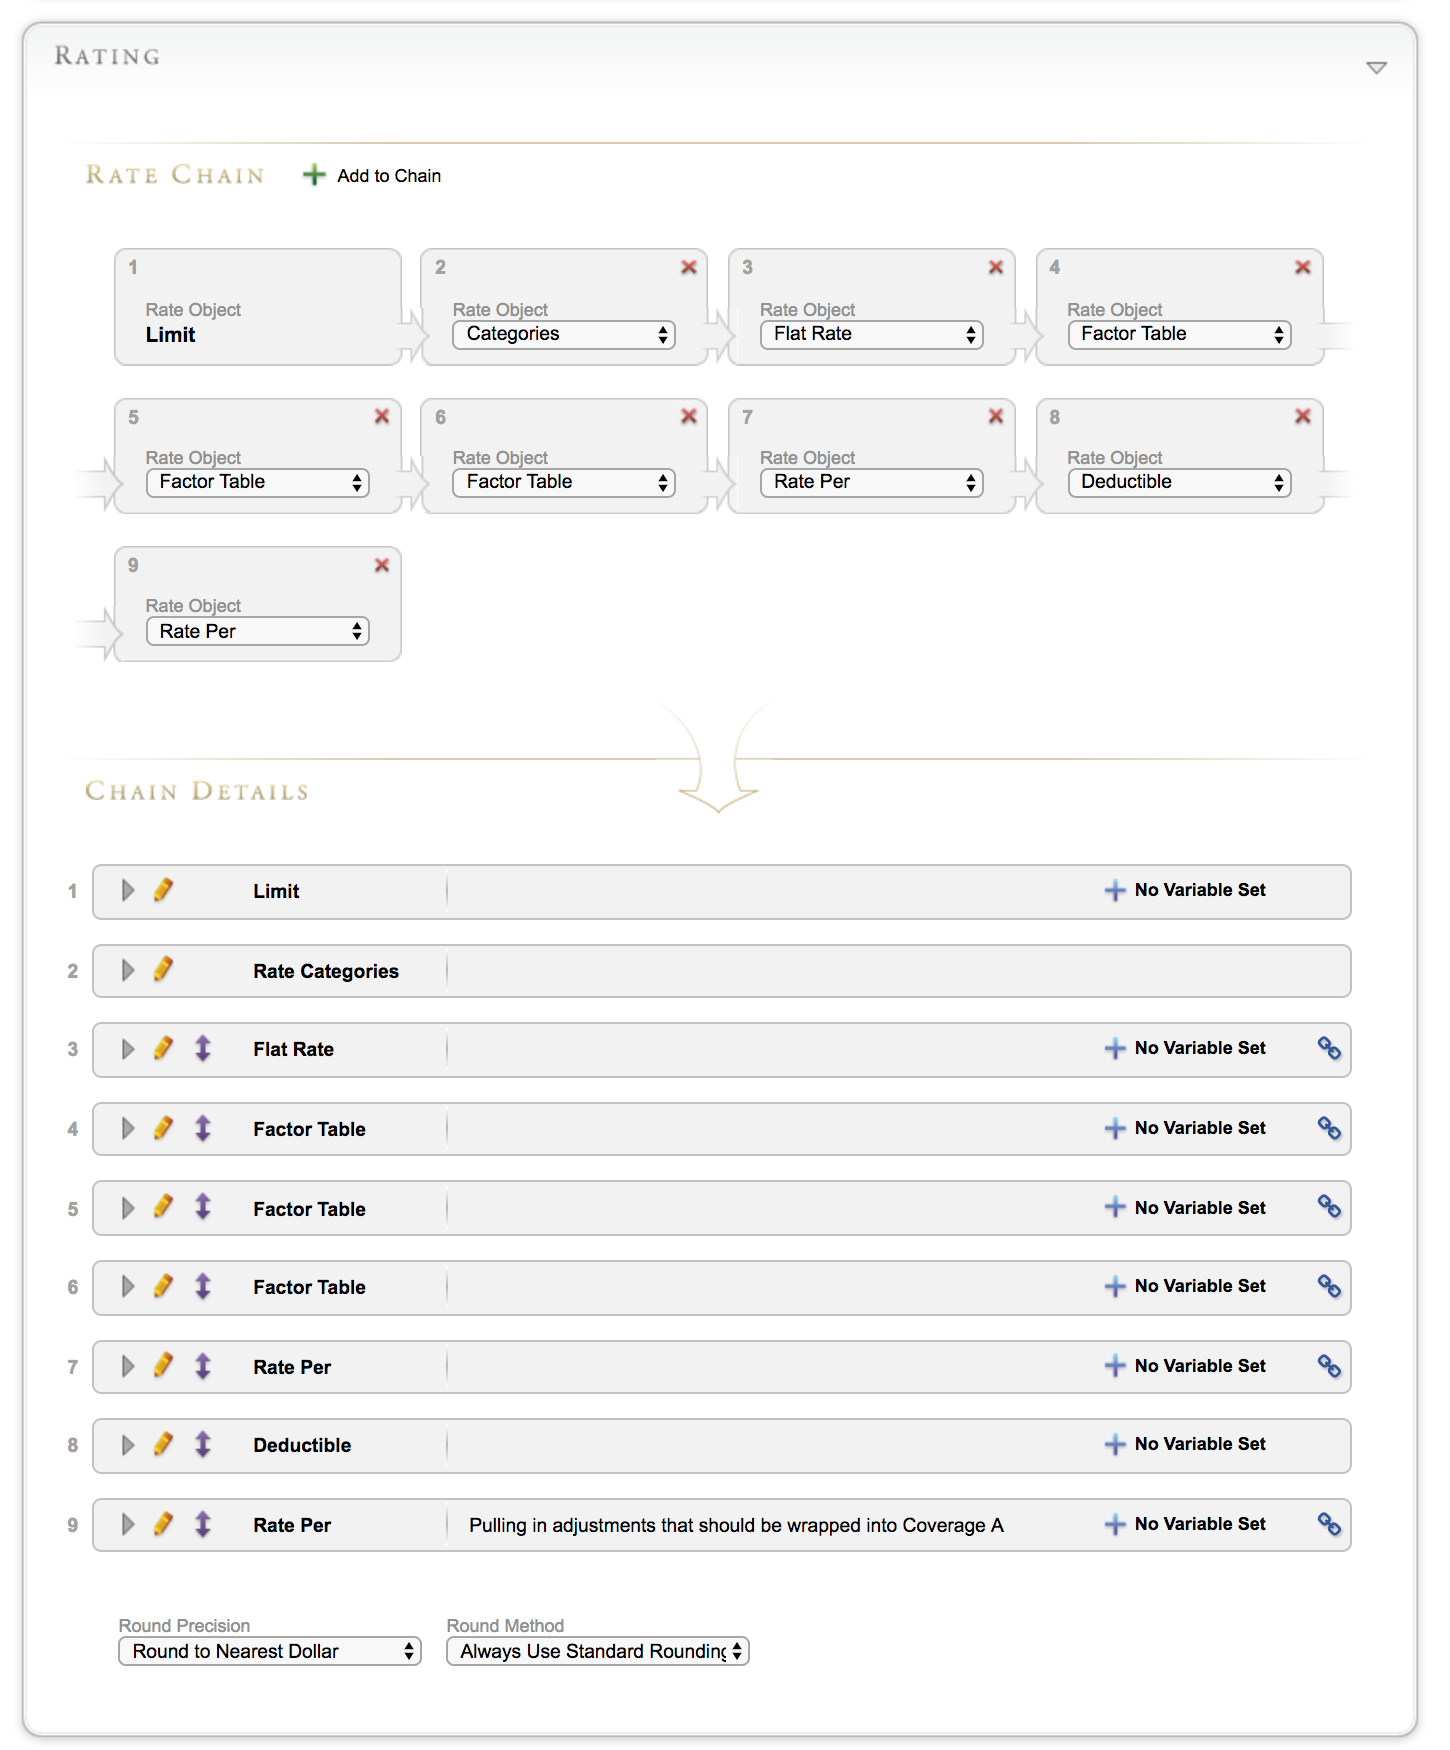 BriteCore Demo - Easily Configure Rating For Your Policies